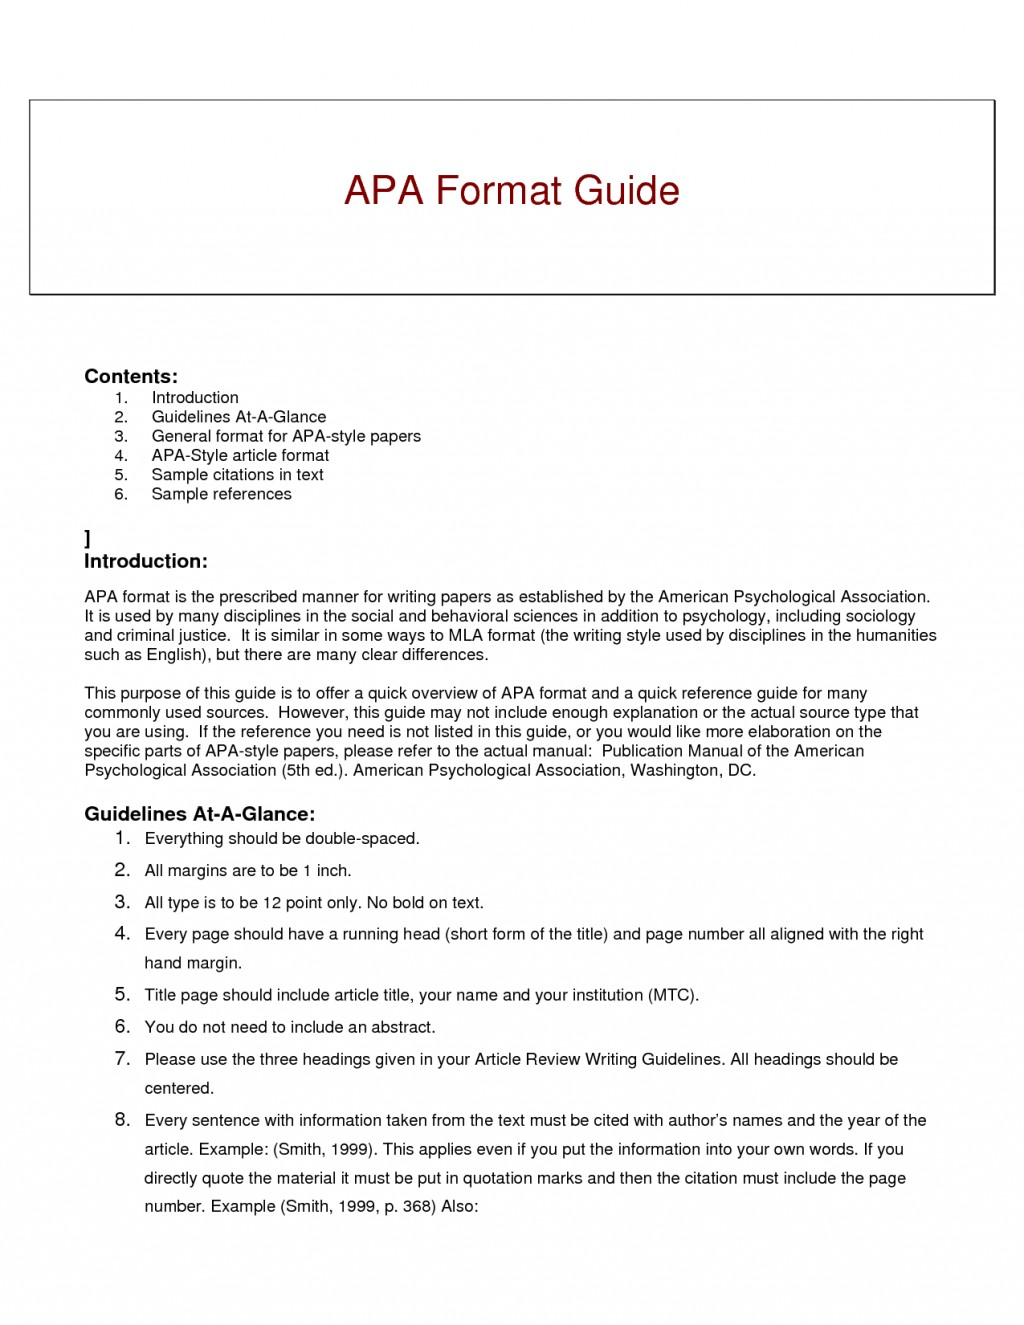 012 Research Paper Short Apa Format Resume Example Of Guide For Writing Style Excellent A Papers Large